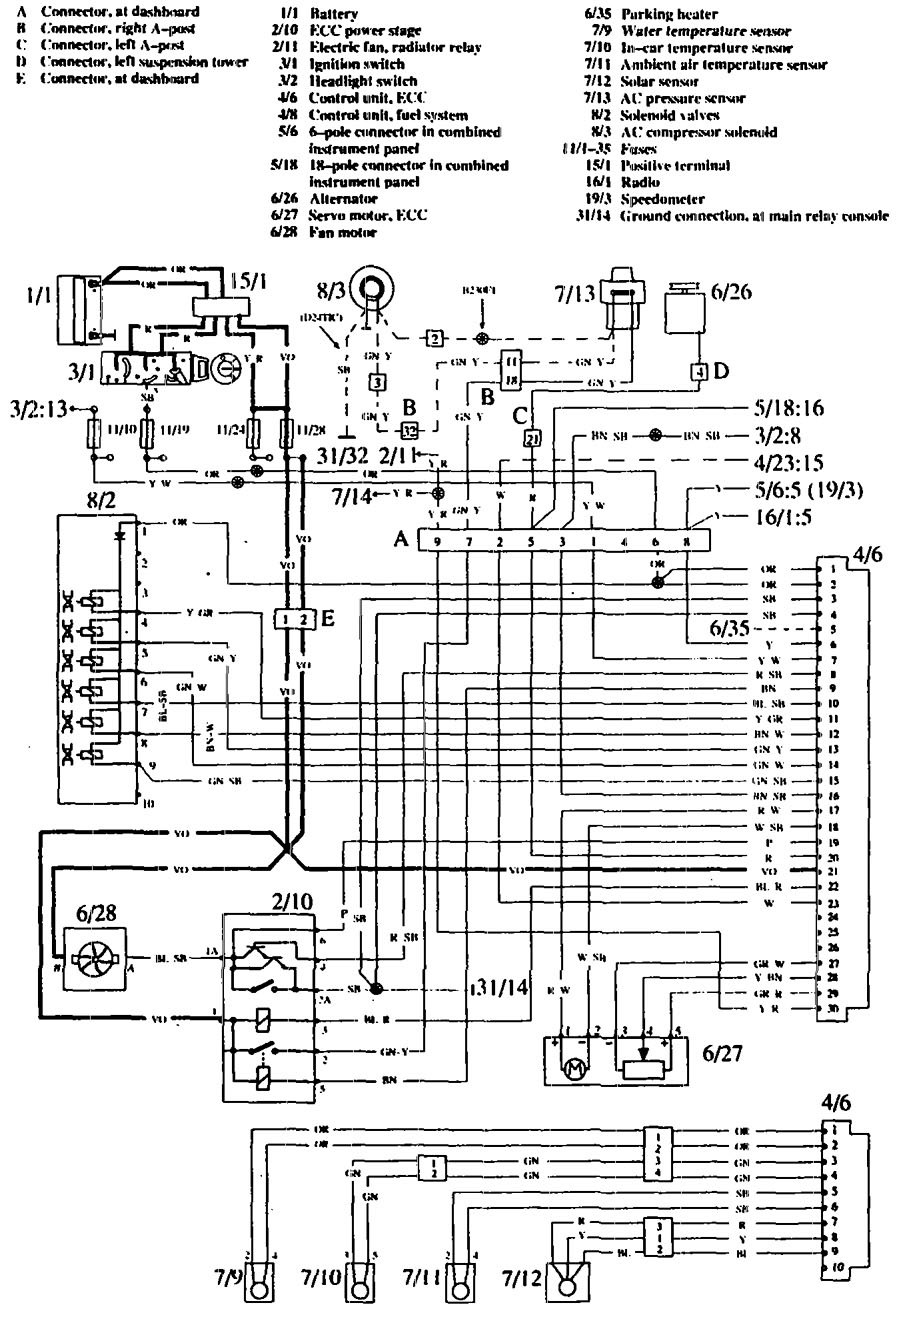 Volvo Vnl Alternator Wiring Diagrams • Wiring Diagram For Free